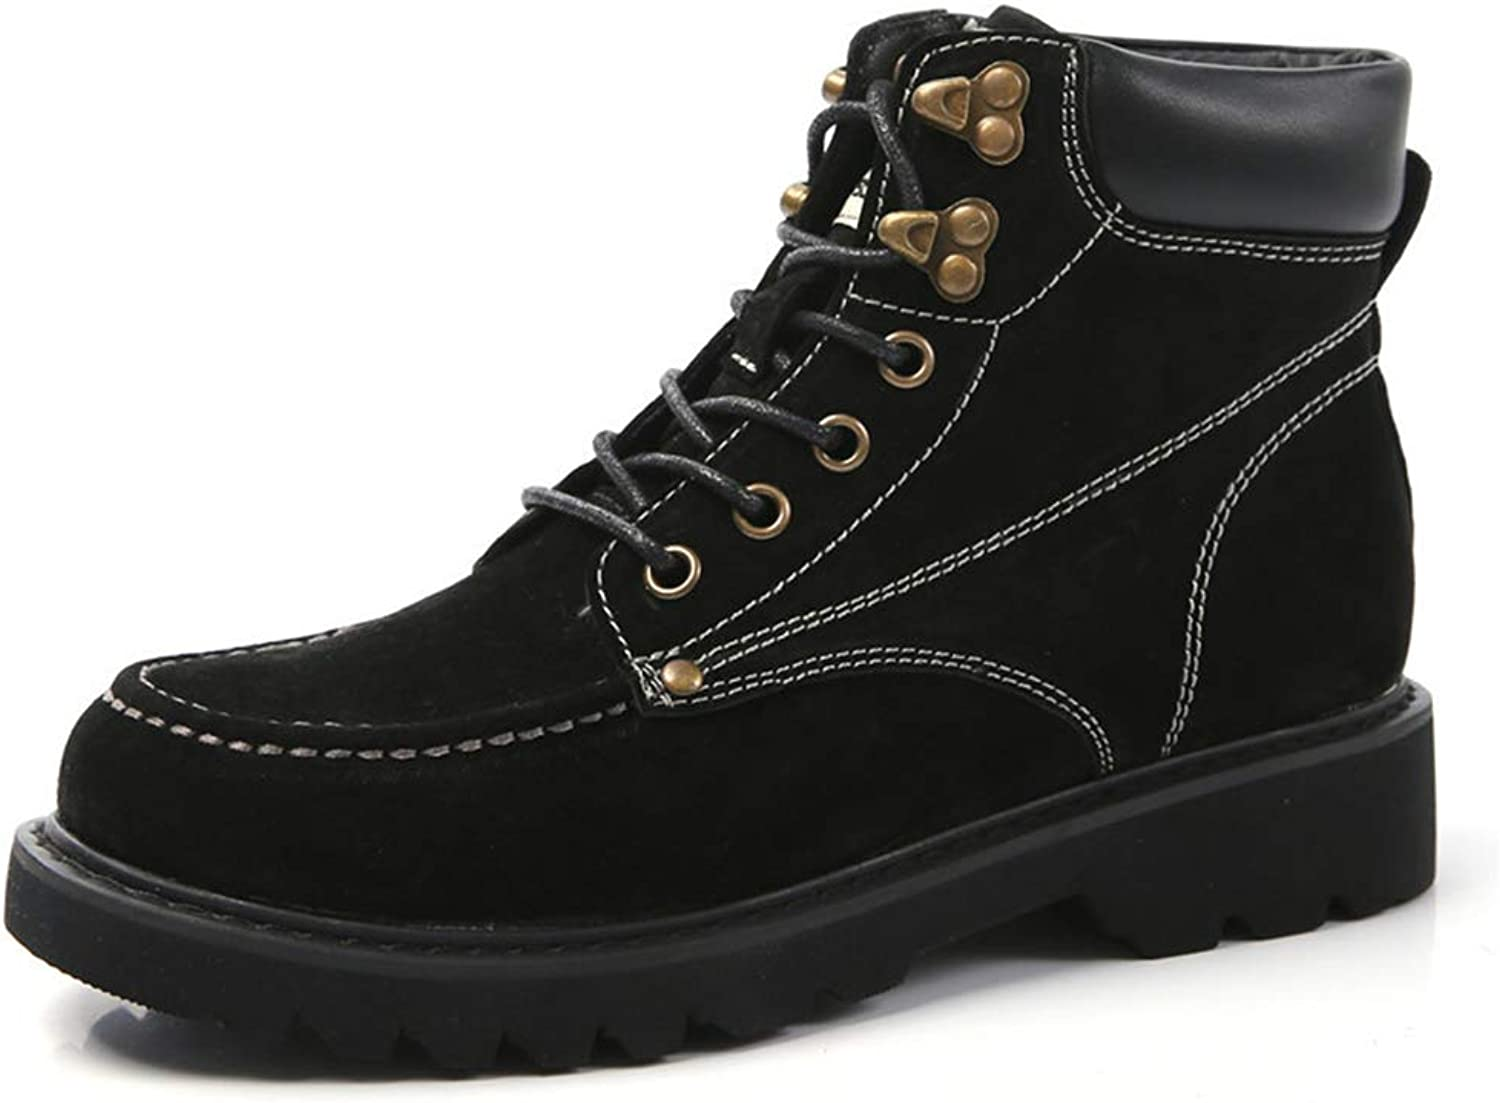 BeautyOriginal Womens Fashion Ankle High Lace Up Combat Military Boots with Winter